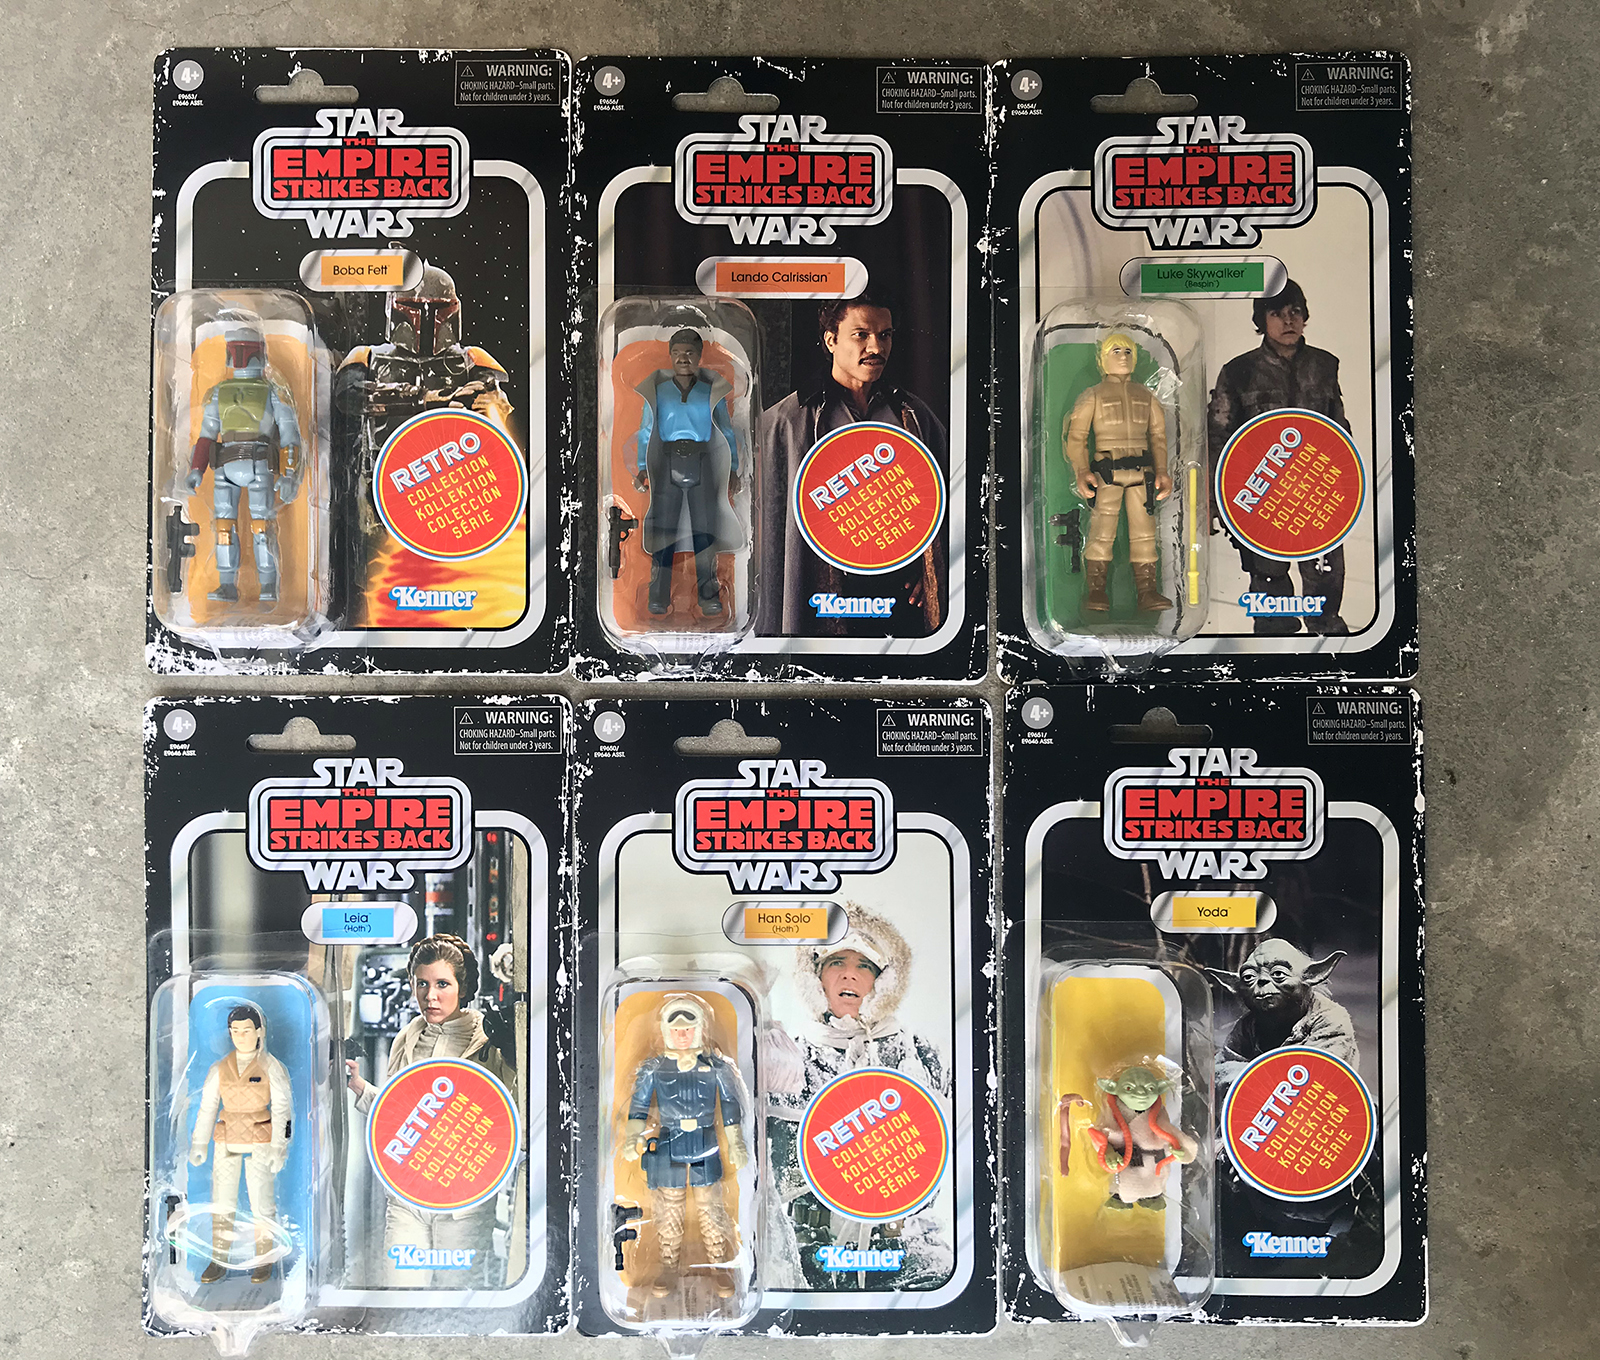 3.75inch Hasbro Star wars kenner Luke Skywalker Han Solo Leia Organa Solo Action Figure Collection toys for christmas gift